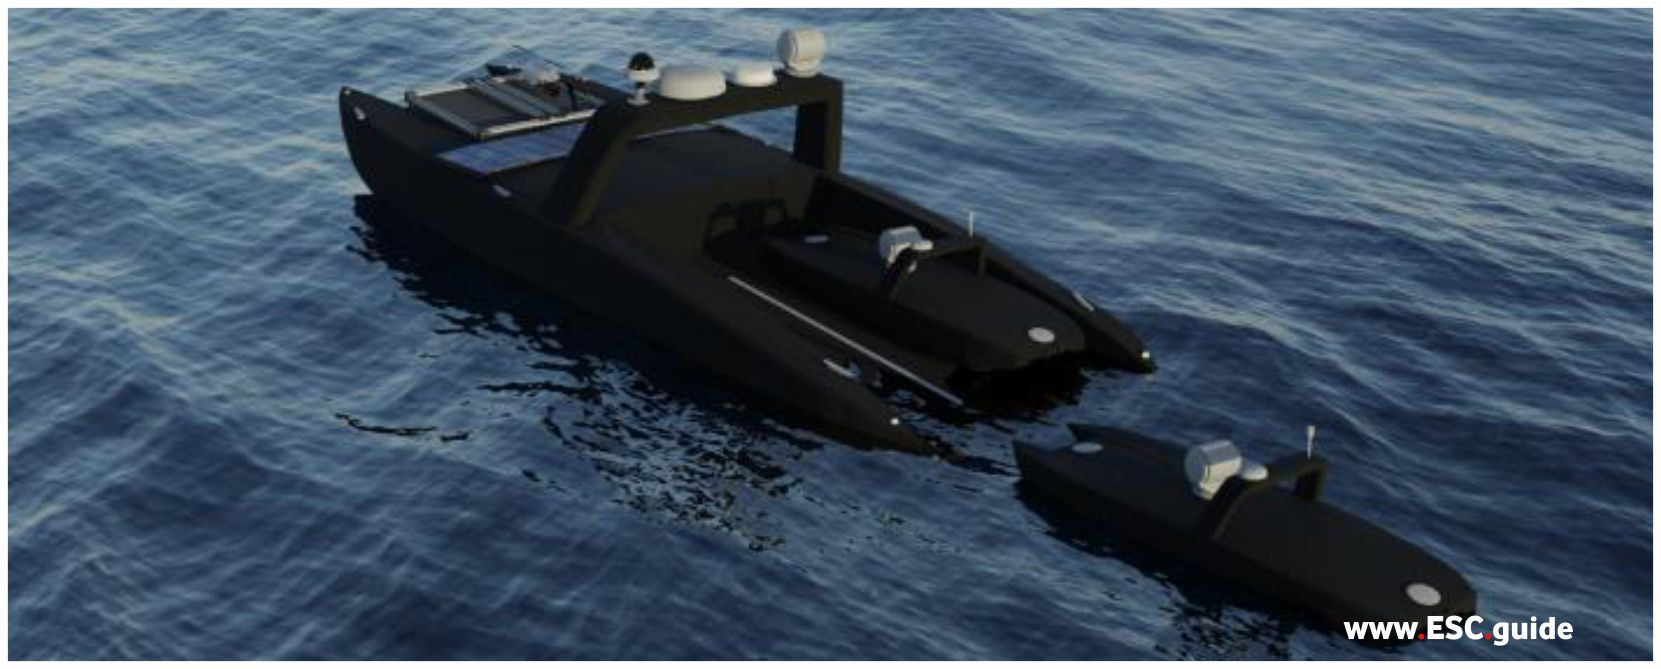 MANTAS T12s with ISR configuration are launched from T38.